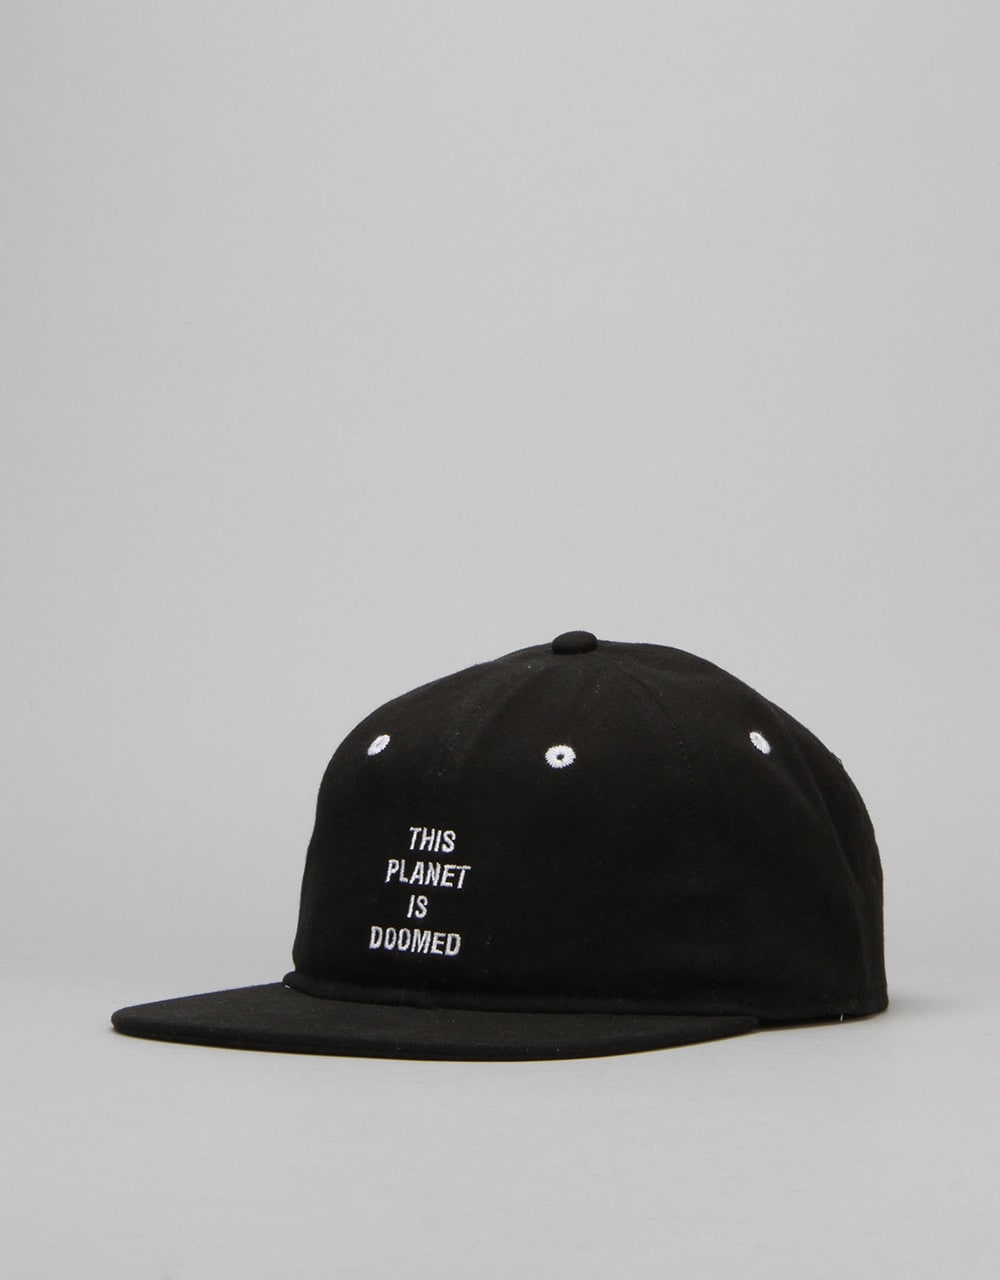 d6aa6f065b7be The Killing Floor Other Worlds Unstructured Strapback Cap - Black ...